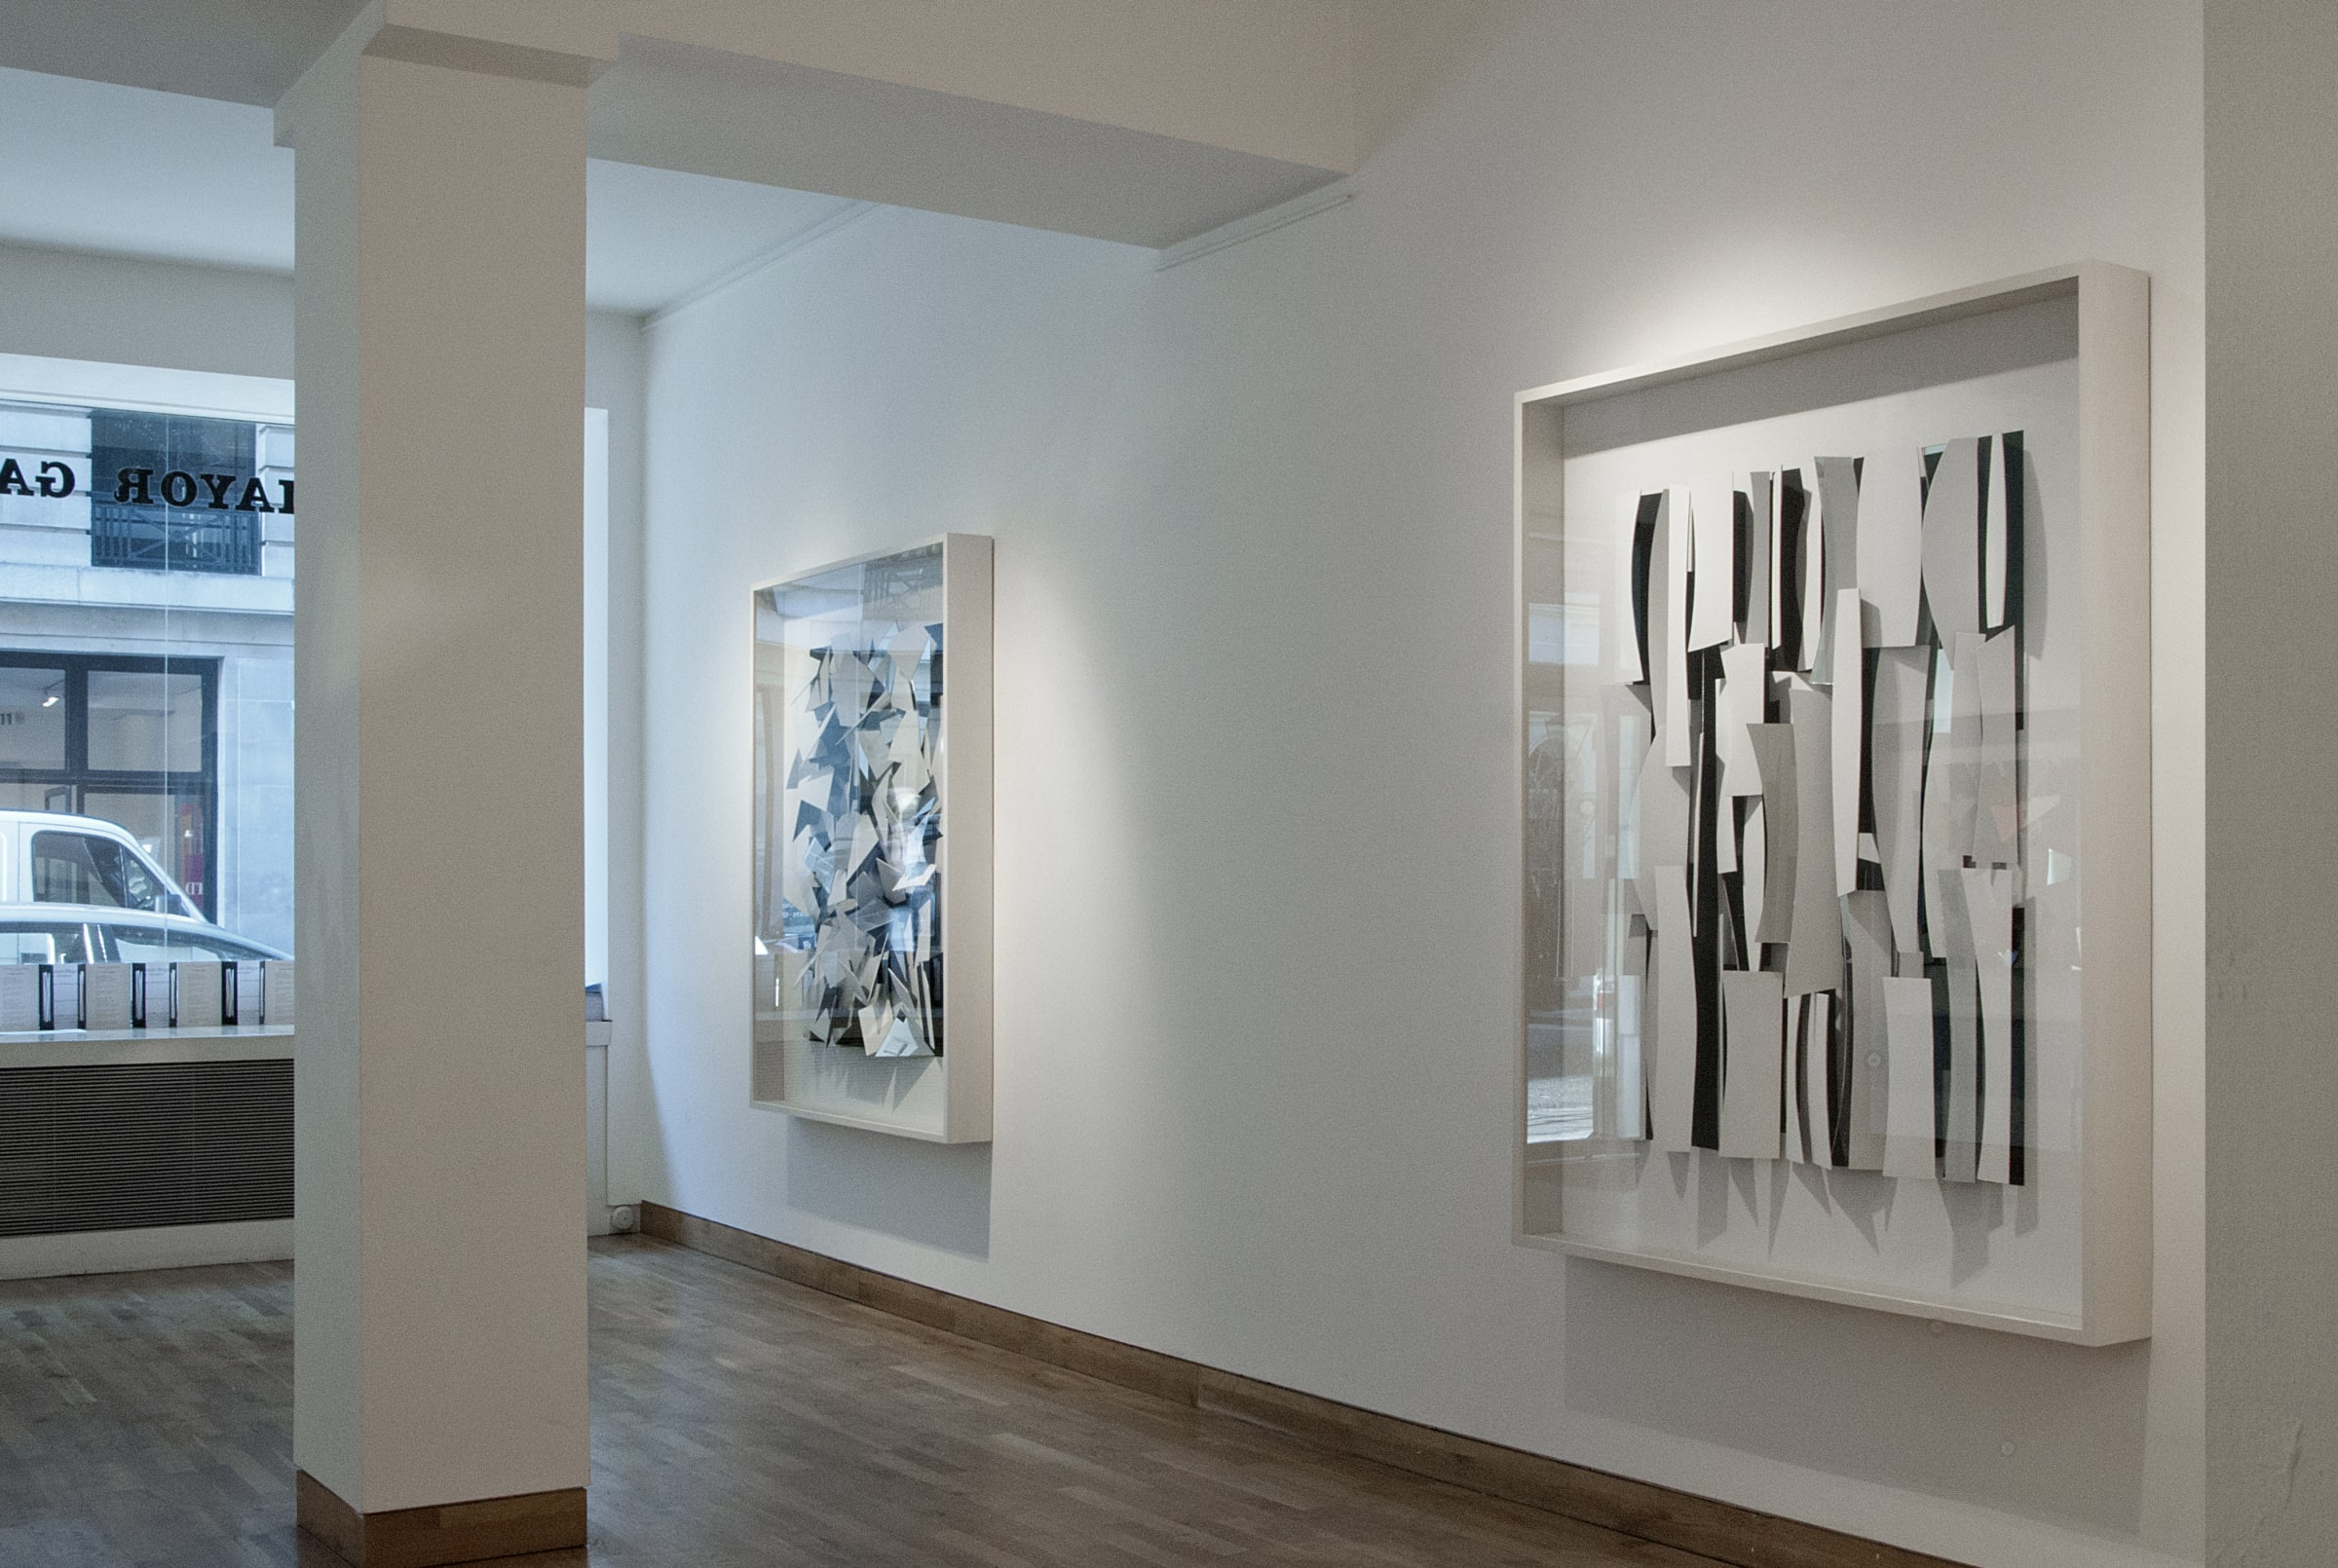 """<span class=""""link fancybox-details-link""""><a href=""""/exhibitions/75/works/image_standalone225/"""">View Detail Page</a></span><p>CHRISTIAN MEGERT   A NEW SPACE   11 JAN - 24 FEB 2012  Installation View</p>"""